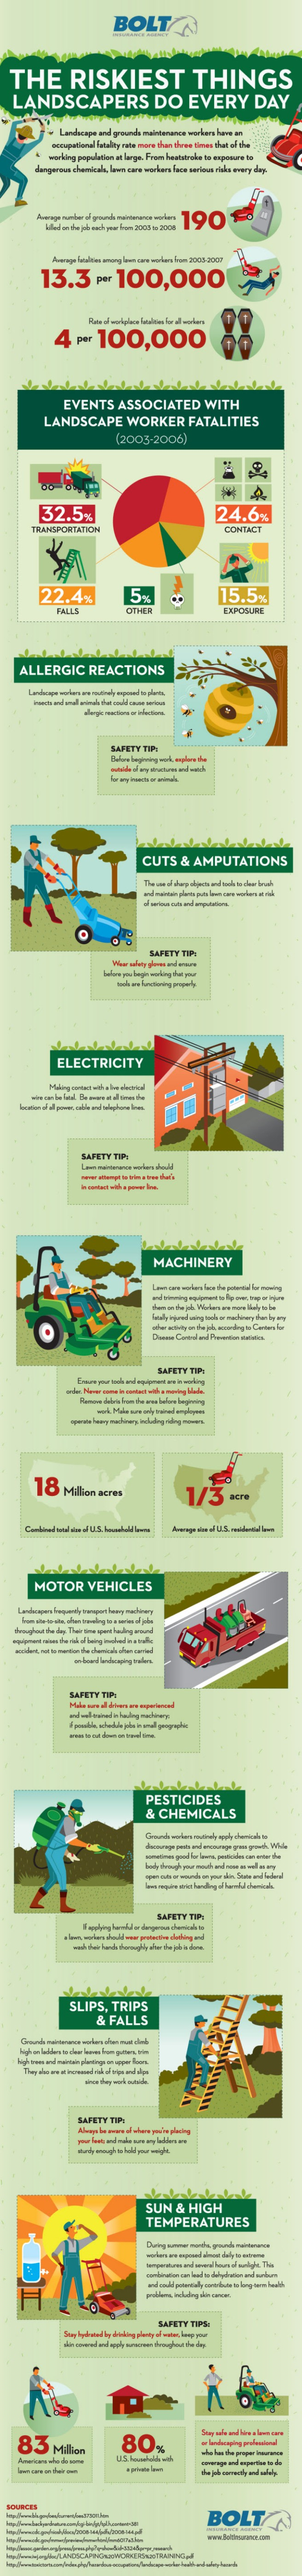 risks_and_dangers_of_landscaping_infographic